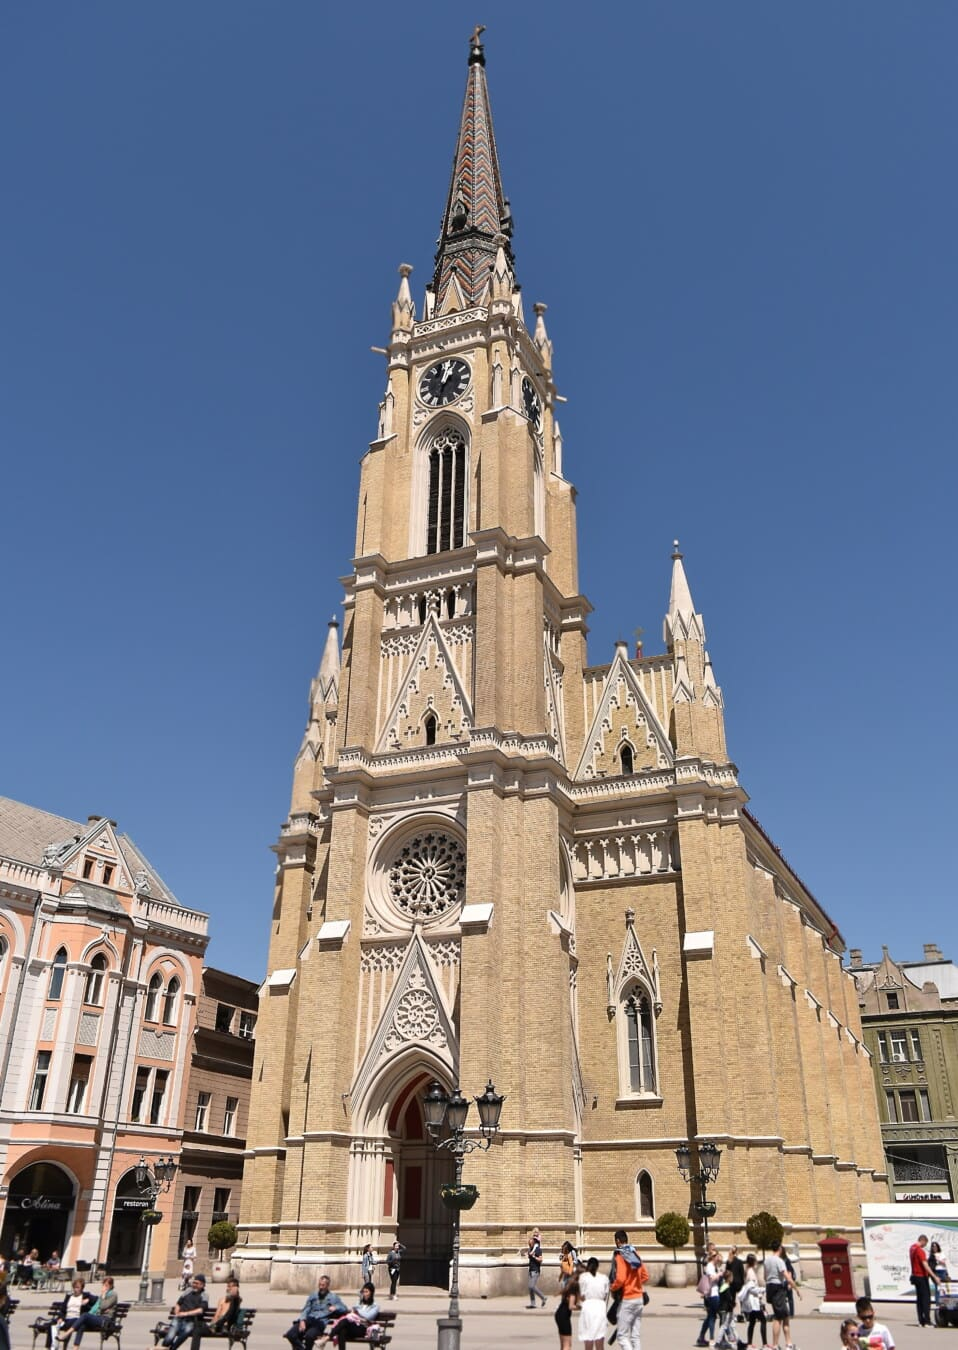 downtown, church, church tower, European, gothic, architectural style, tourist attraction, tourist, architecture, city